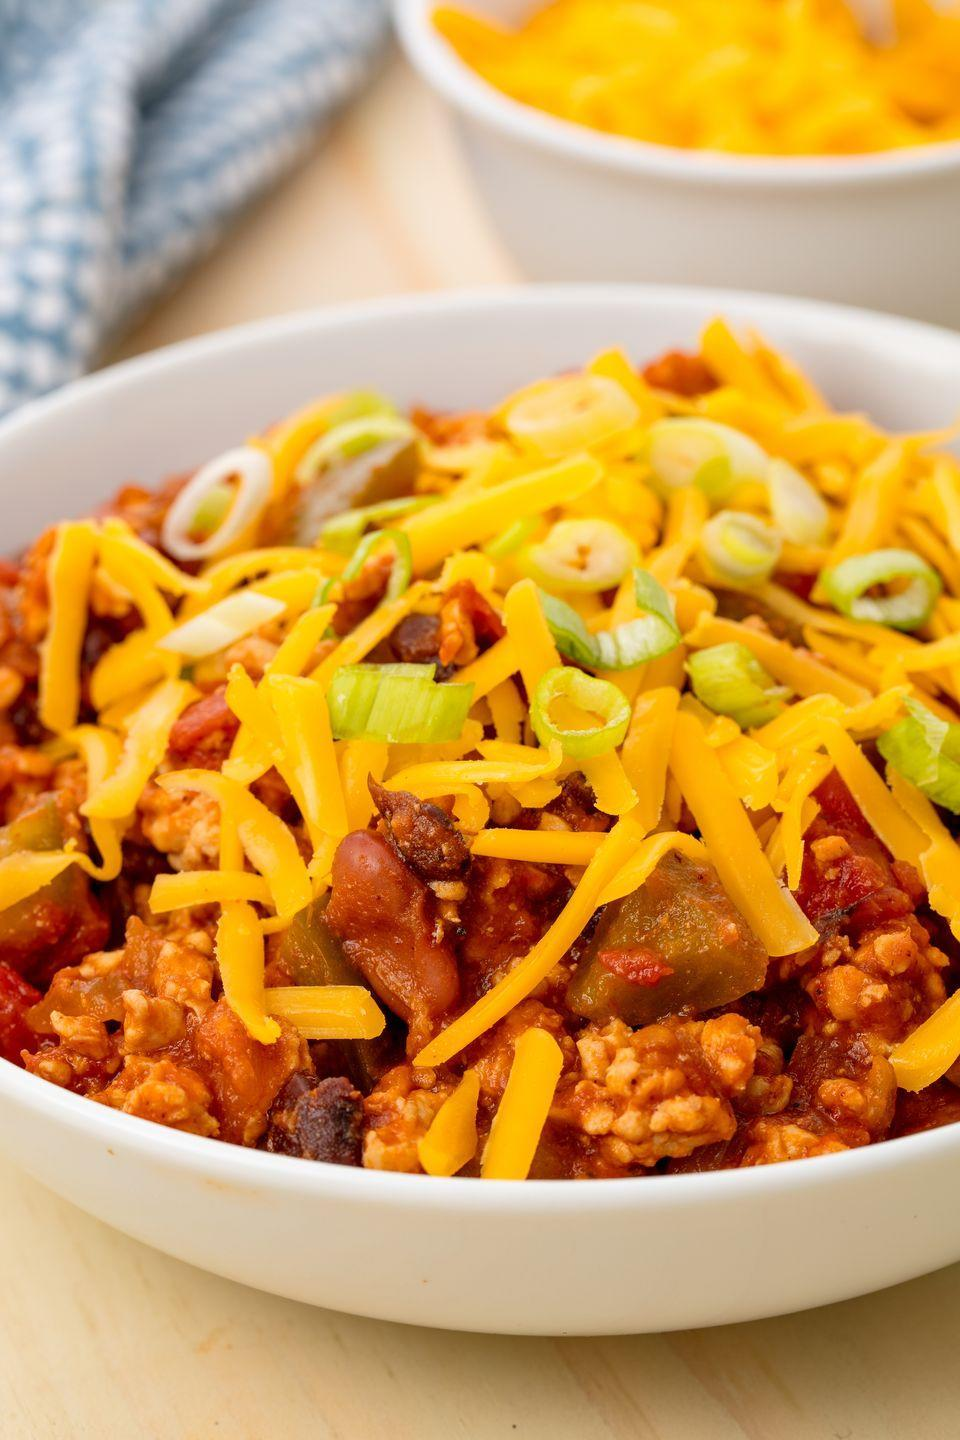 "<p>You'll be making this easy turkey chili on repeat all year long.</p><p>Get the recipe from <a href=""https://www.delish.com/cooking/recipe-ideas/recipes/a55200/easy-turkey-slow-cooker-chili-recipe/"" rel=""nofollow noopener"" target=""_blank"" data-ylk=""slk:Delish"" class=""link rapid-noclick-resp"">Delish</a>.</p>"